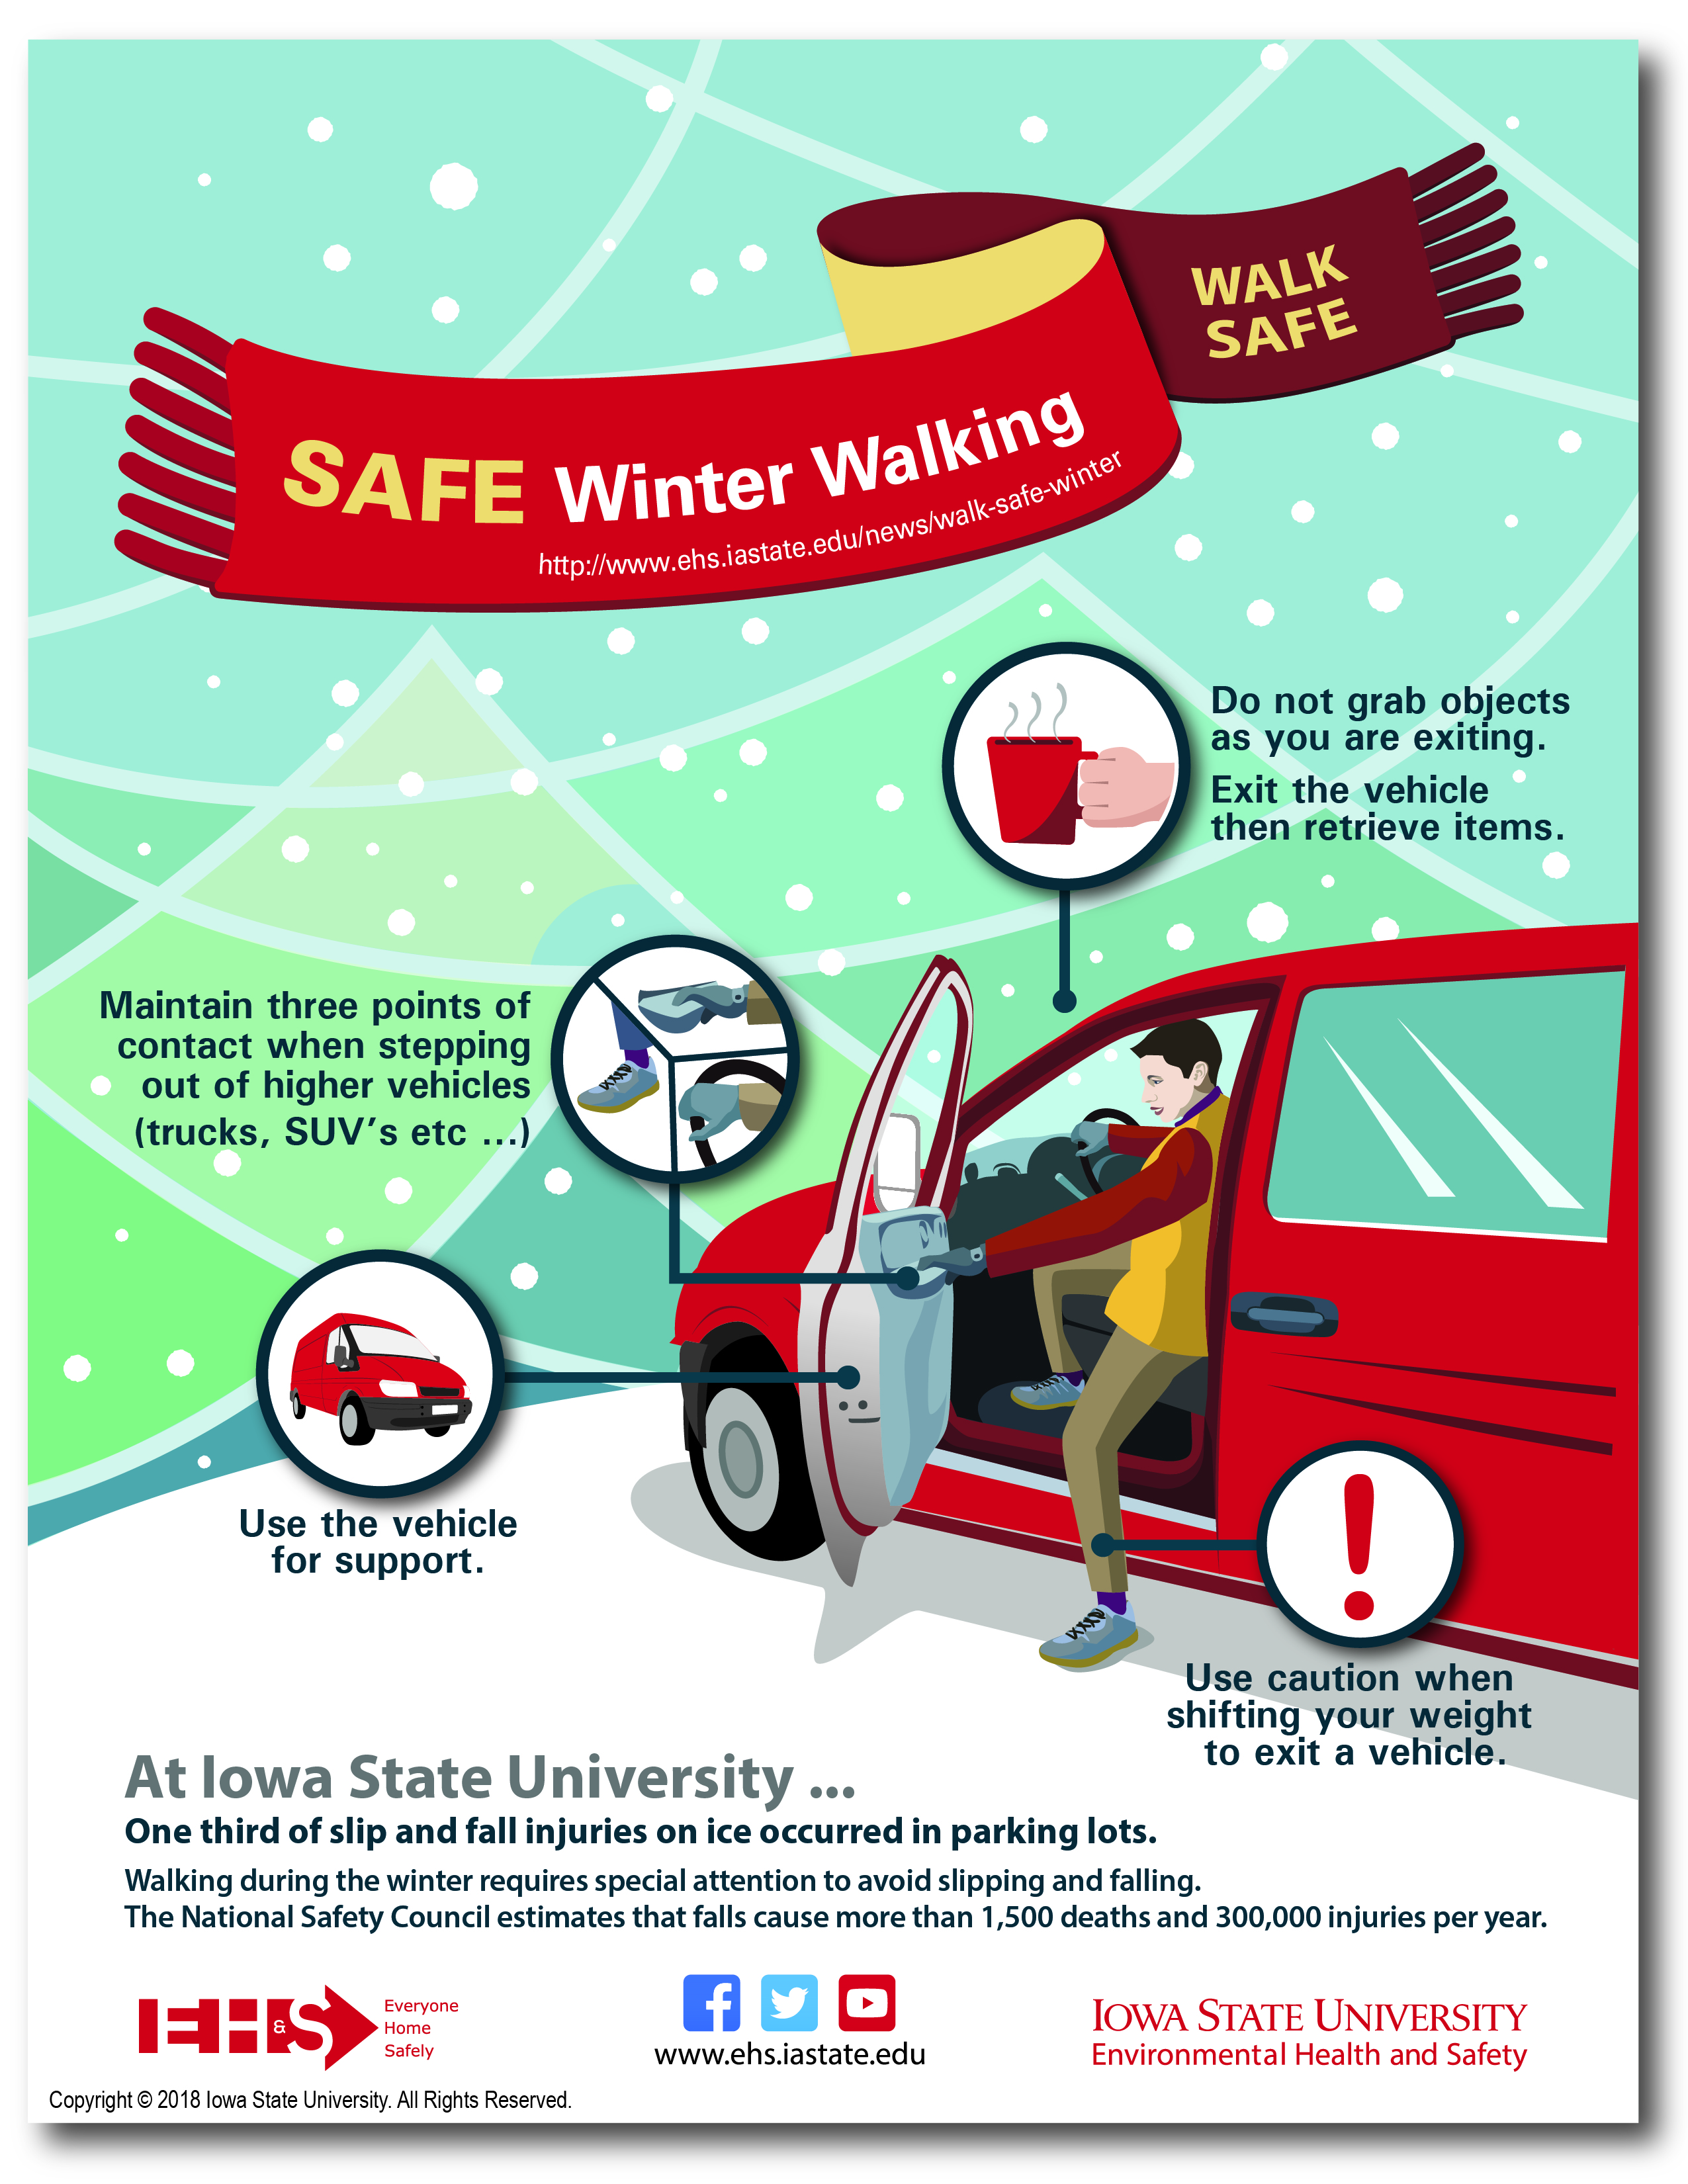 Walk Safe This Winter Environmental Health And Safety